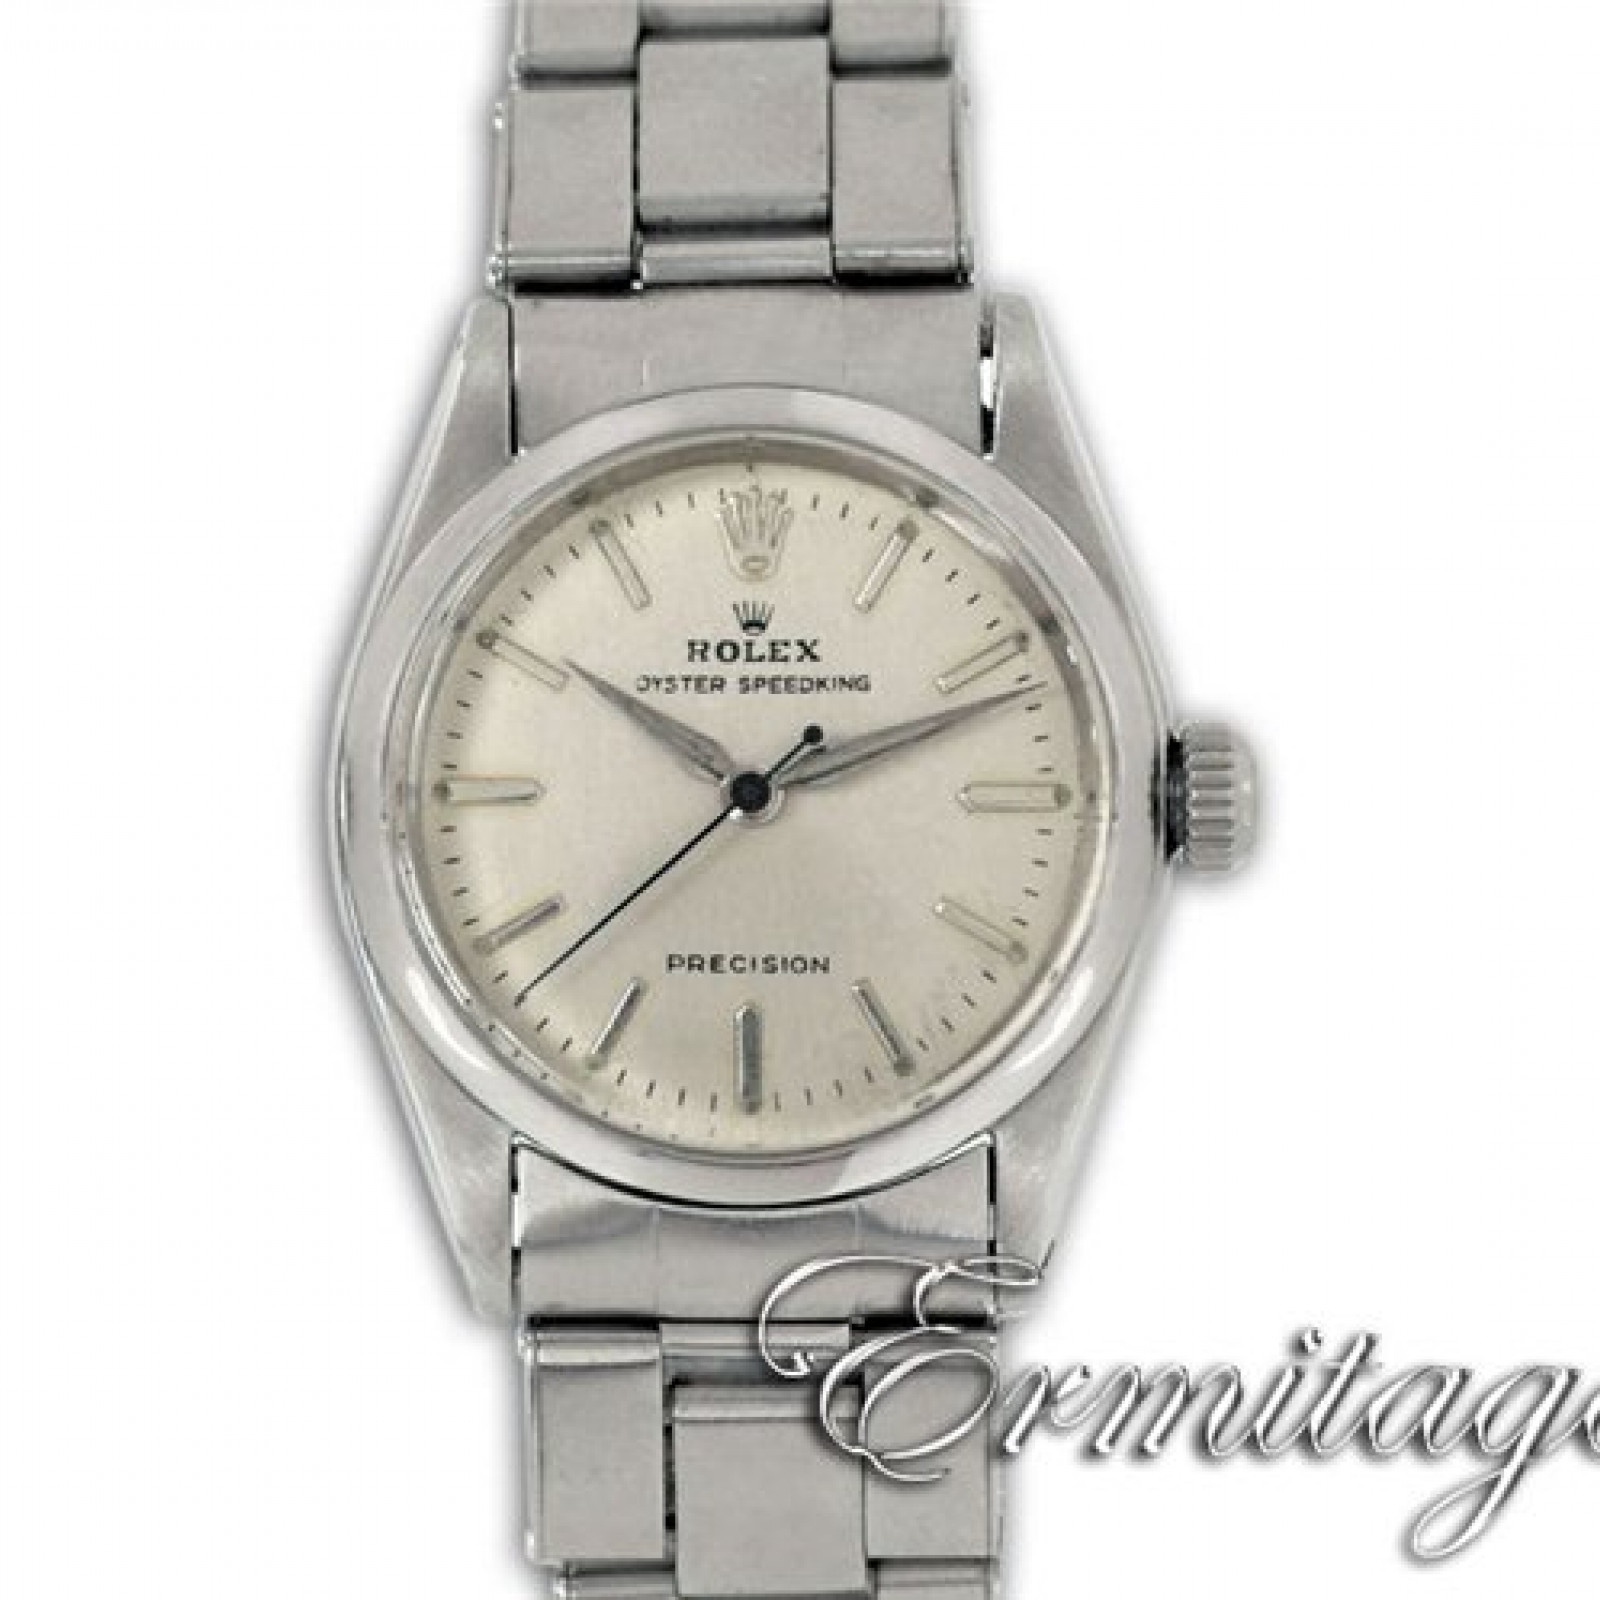 Vintage Rolex Oyster Speedking 6420 Steel with Silver Dial